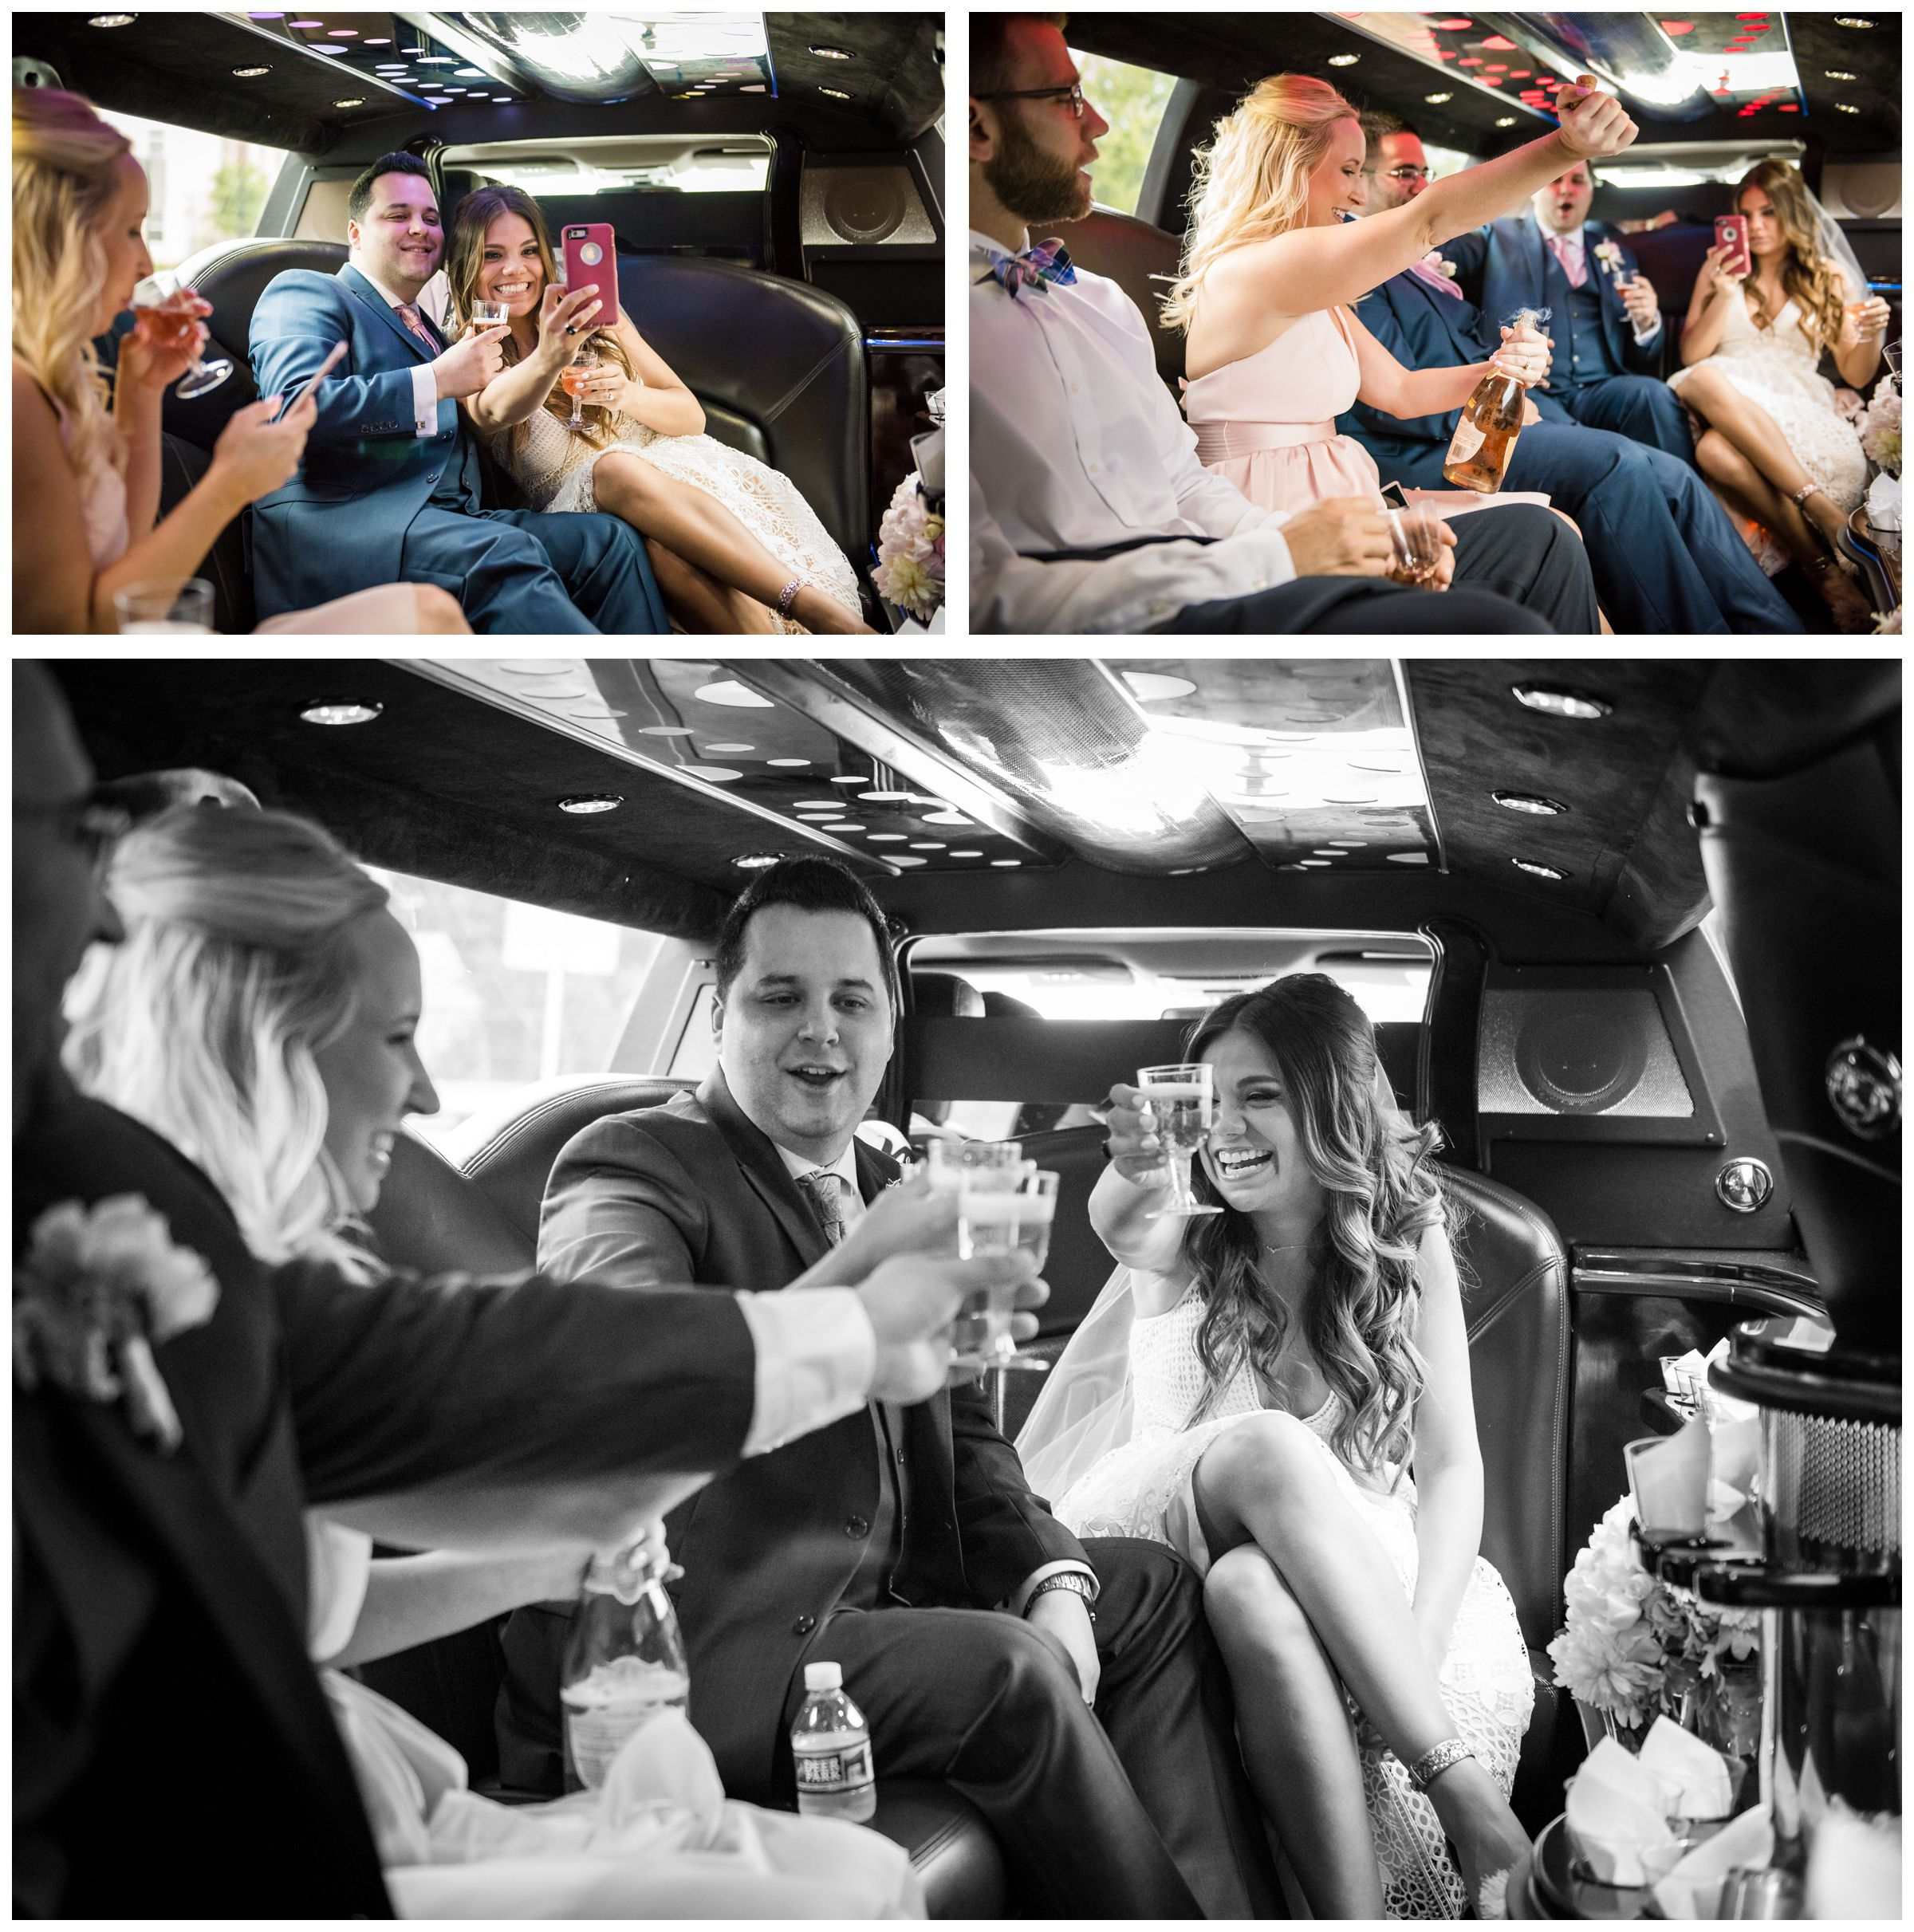 bridal party celebrating in limo in downtown Washington, D.C. after wedding